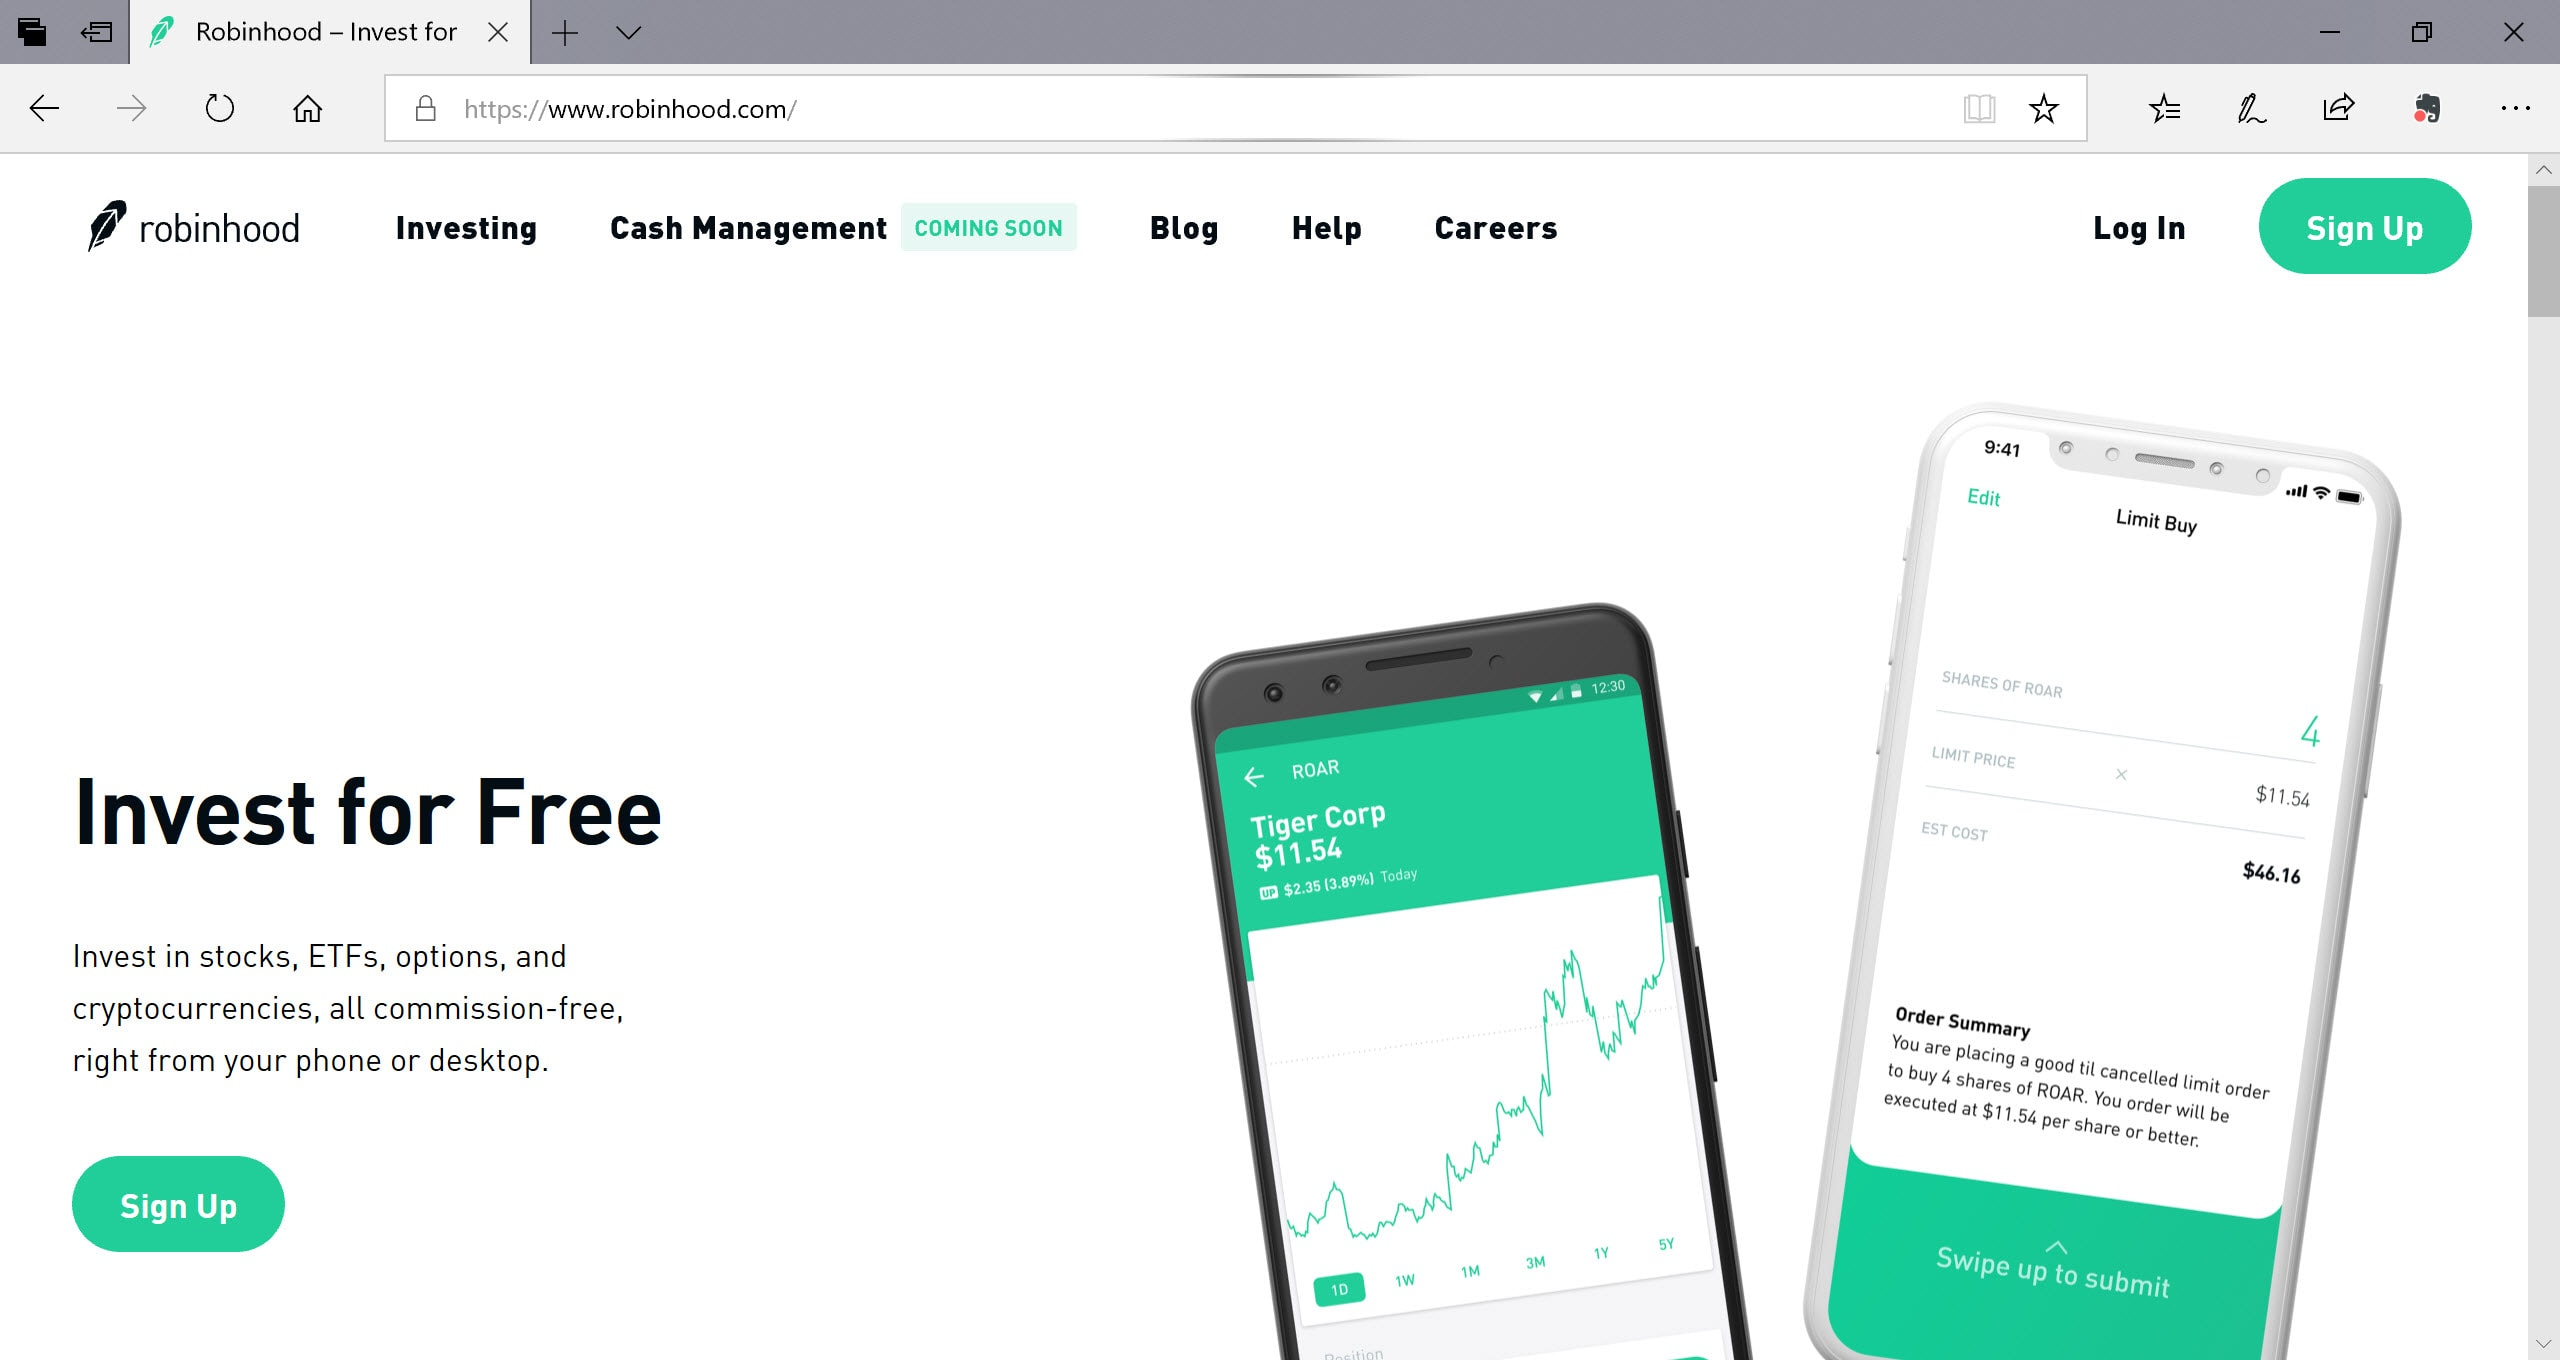 Pdt Designation Robinhood